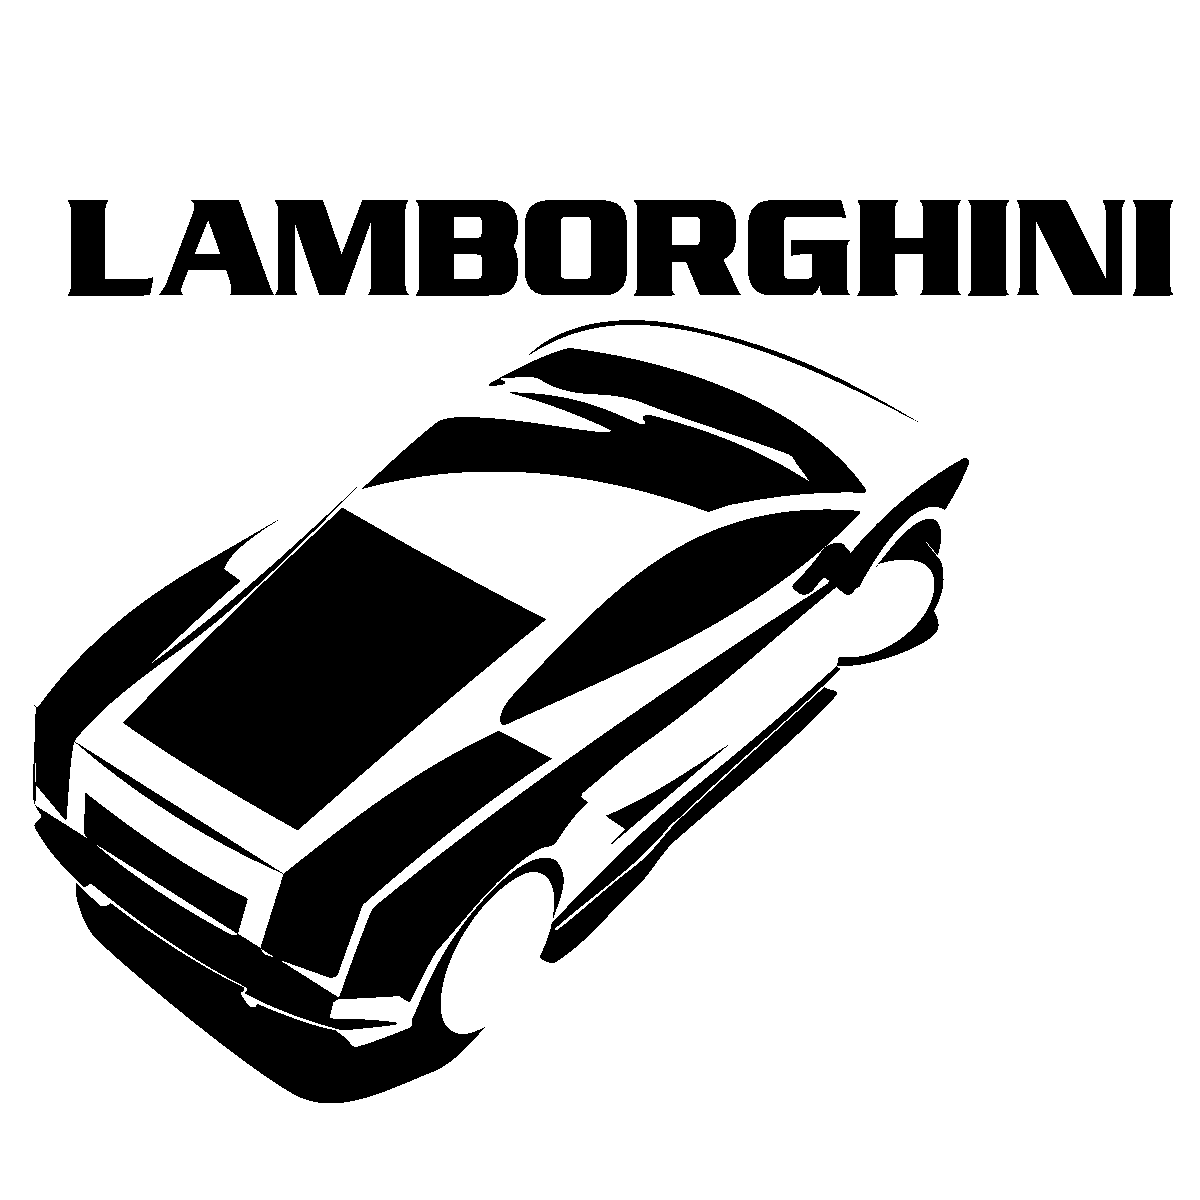 Stickers muraux design sticker mural design lamborghini ambiance sticker com